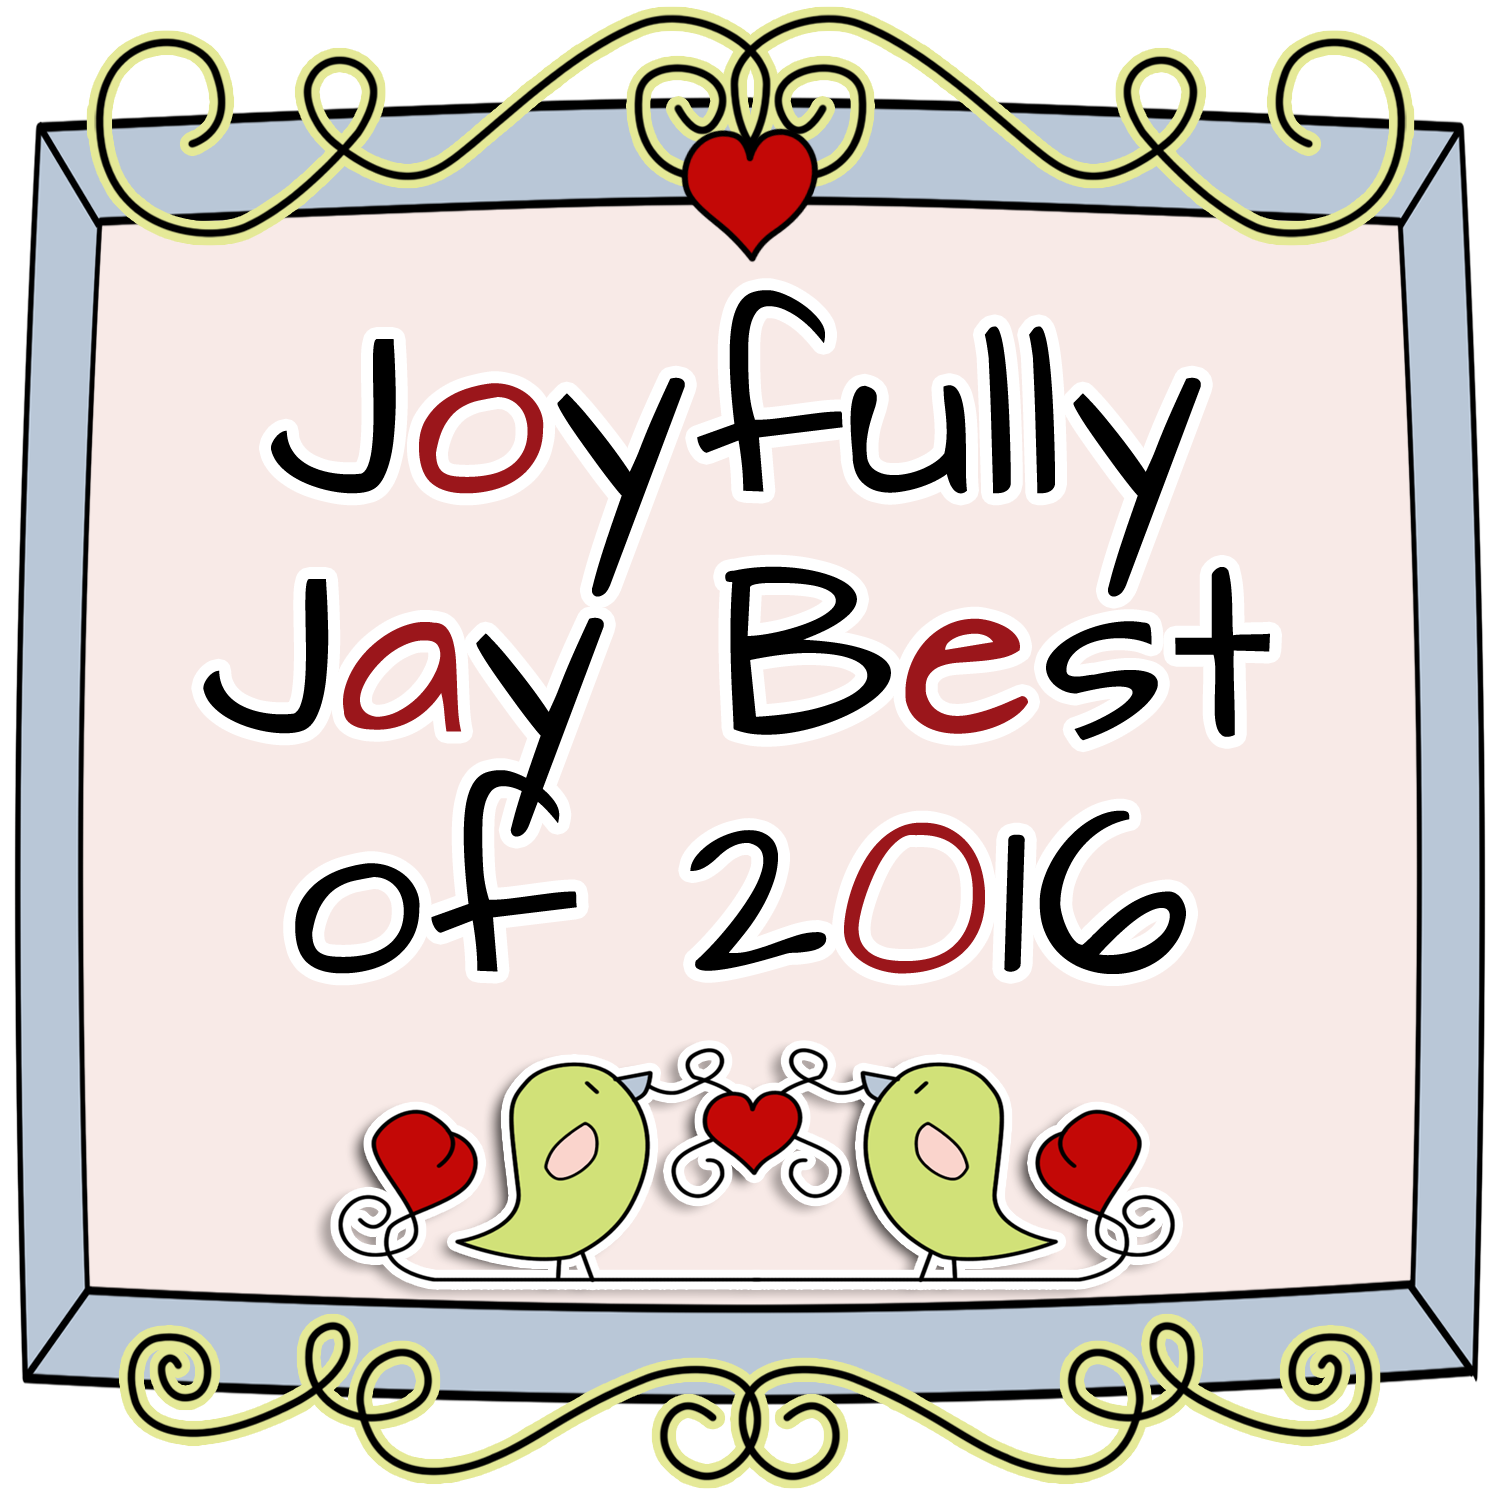 Jay's Best of 2016